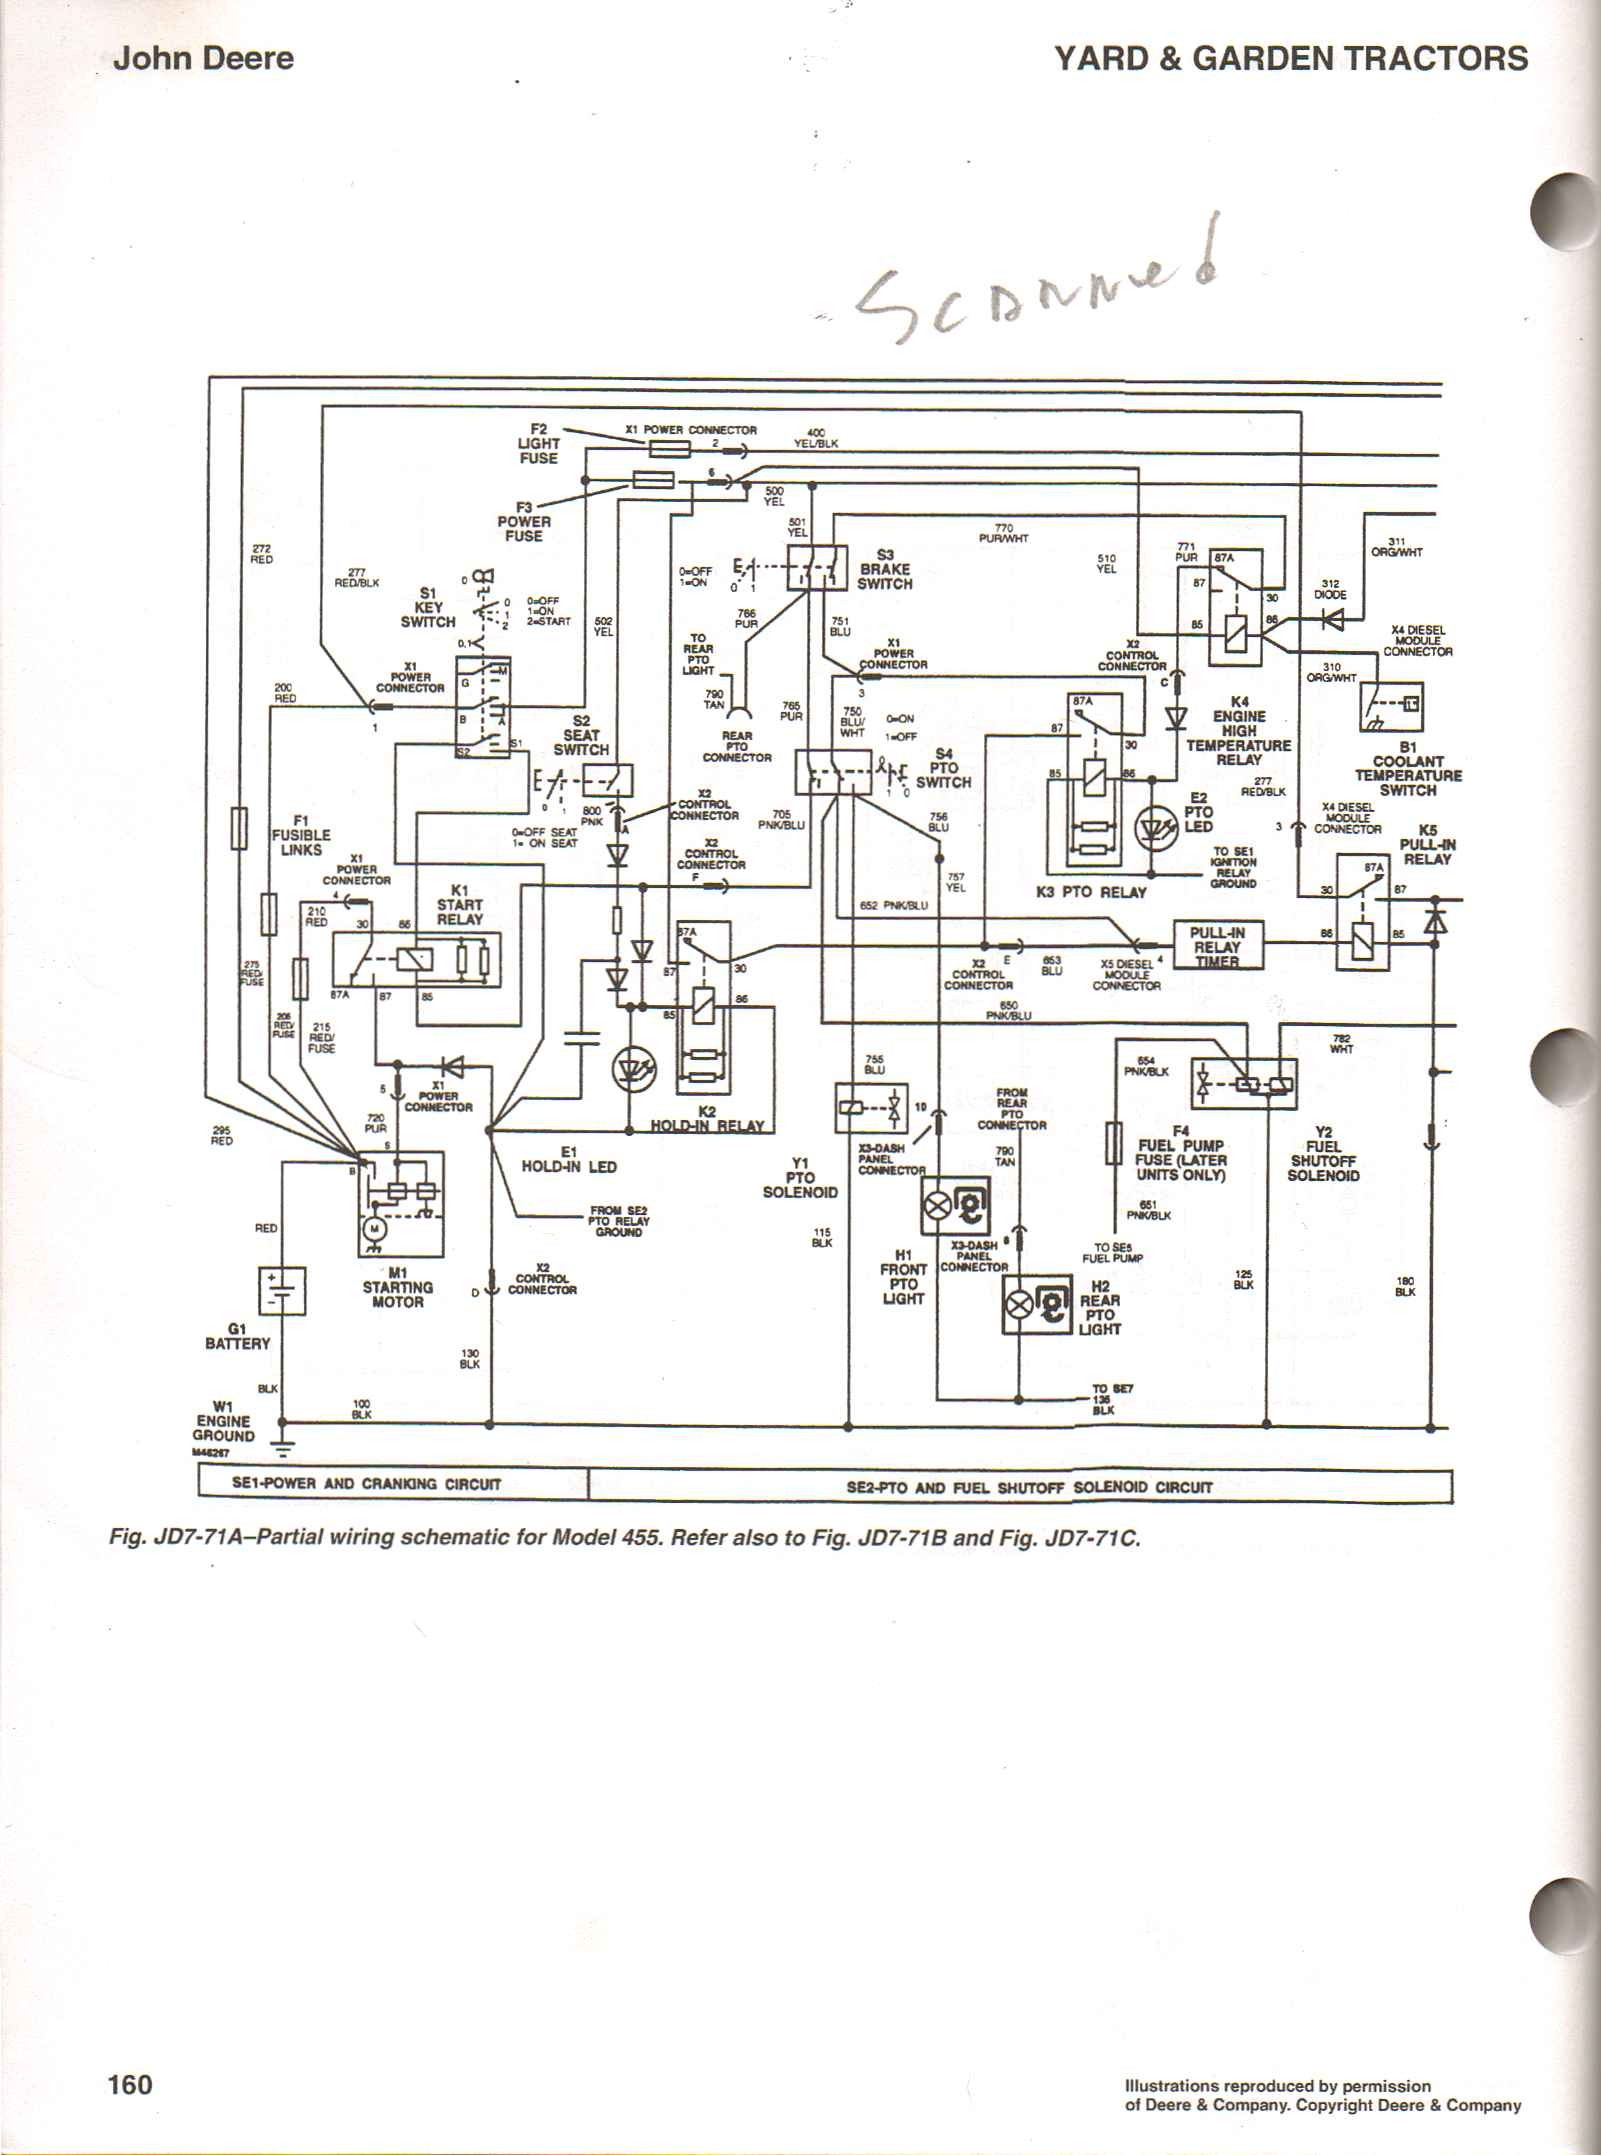 "65F3 1971 John Deere 112 Wiring Diagram | Wiring Resources John Deere Wiring Diagram on john deere voltage regulator wiring, john deere tractor wiring, john deere fuse box diagram, john deere 42"" deck diagrams, john deere repair diagrams, john deere 3020 diagram, john deere starters diagrams, john deere 310e backhoe problems, john deere power beyond diagram, john deere fuel gauge wiring, john deere gt235 diagram, john deere cylinder head, john deere 345 diagram, john deere electrical diagrams, john deere riding mower diagram, john deere 212 diagram, john deere chassis, john deere fuel system diagram, john deere sabre mower belt diagram, john deere rear end diagrams,"